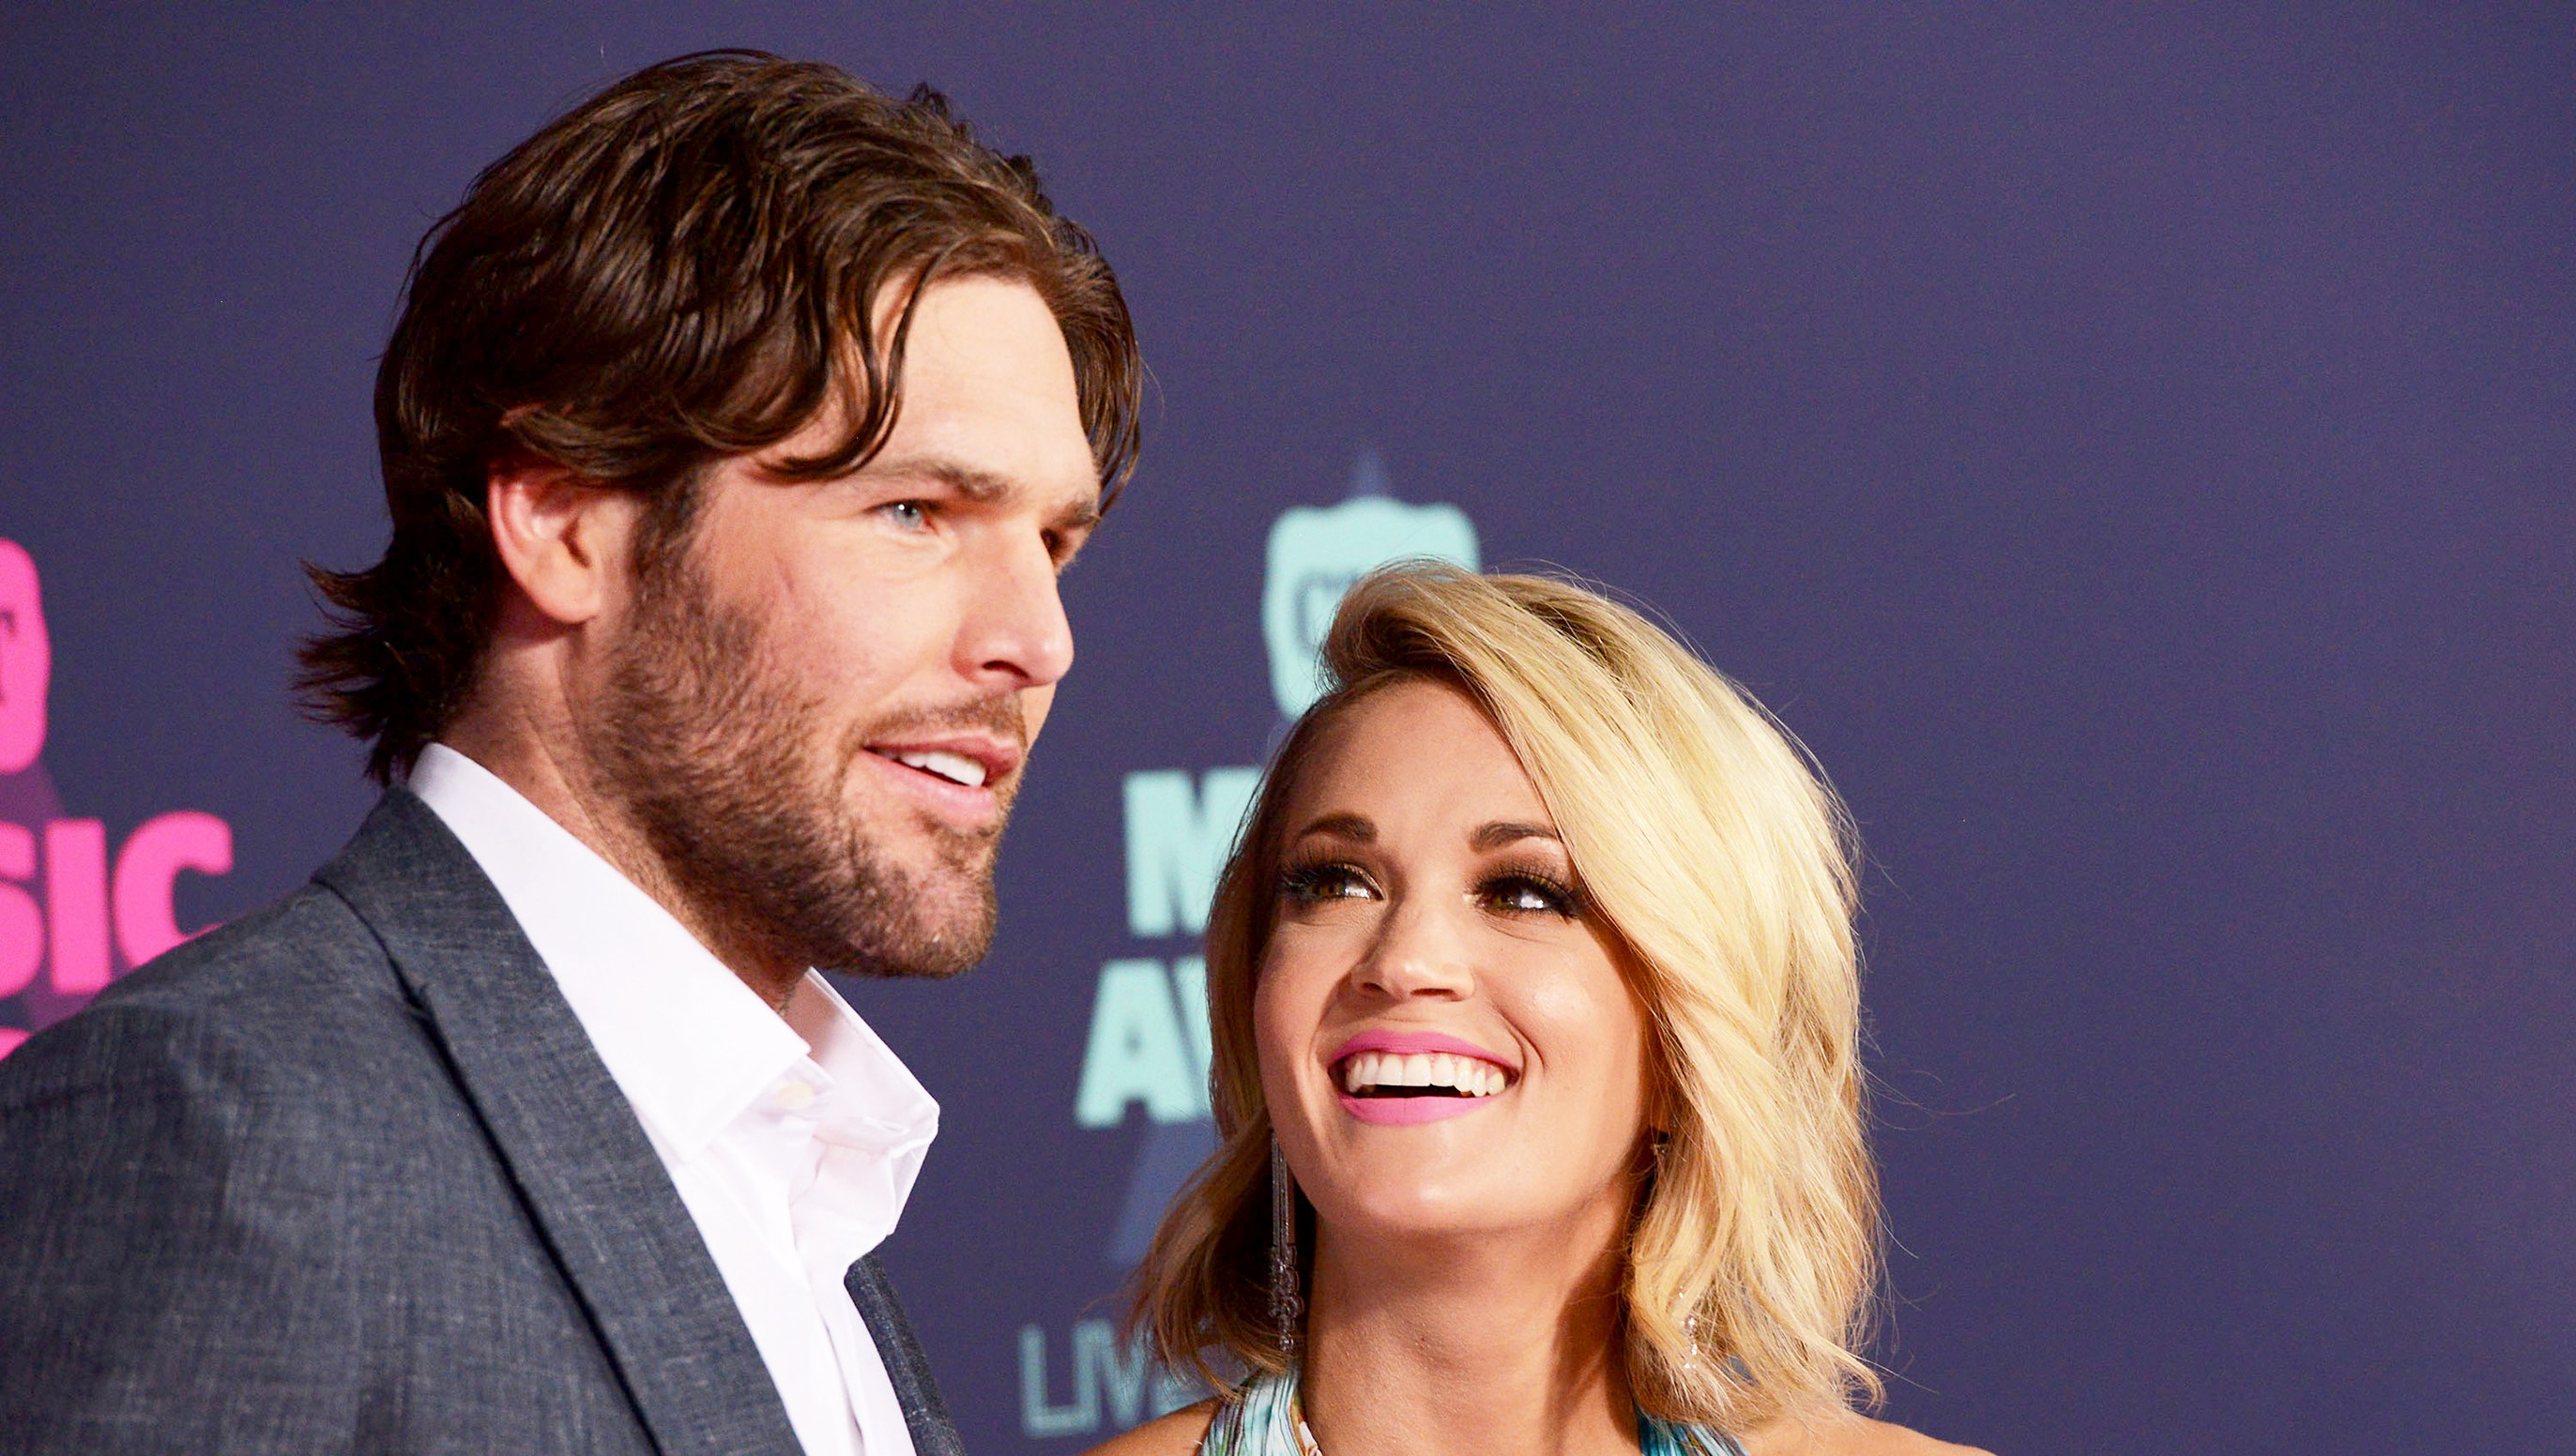 Carrie Underwood and Mike Fisher attend the 2016 CMT Music awards at the Bridgestone Arena in Nashville, Tennessee.